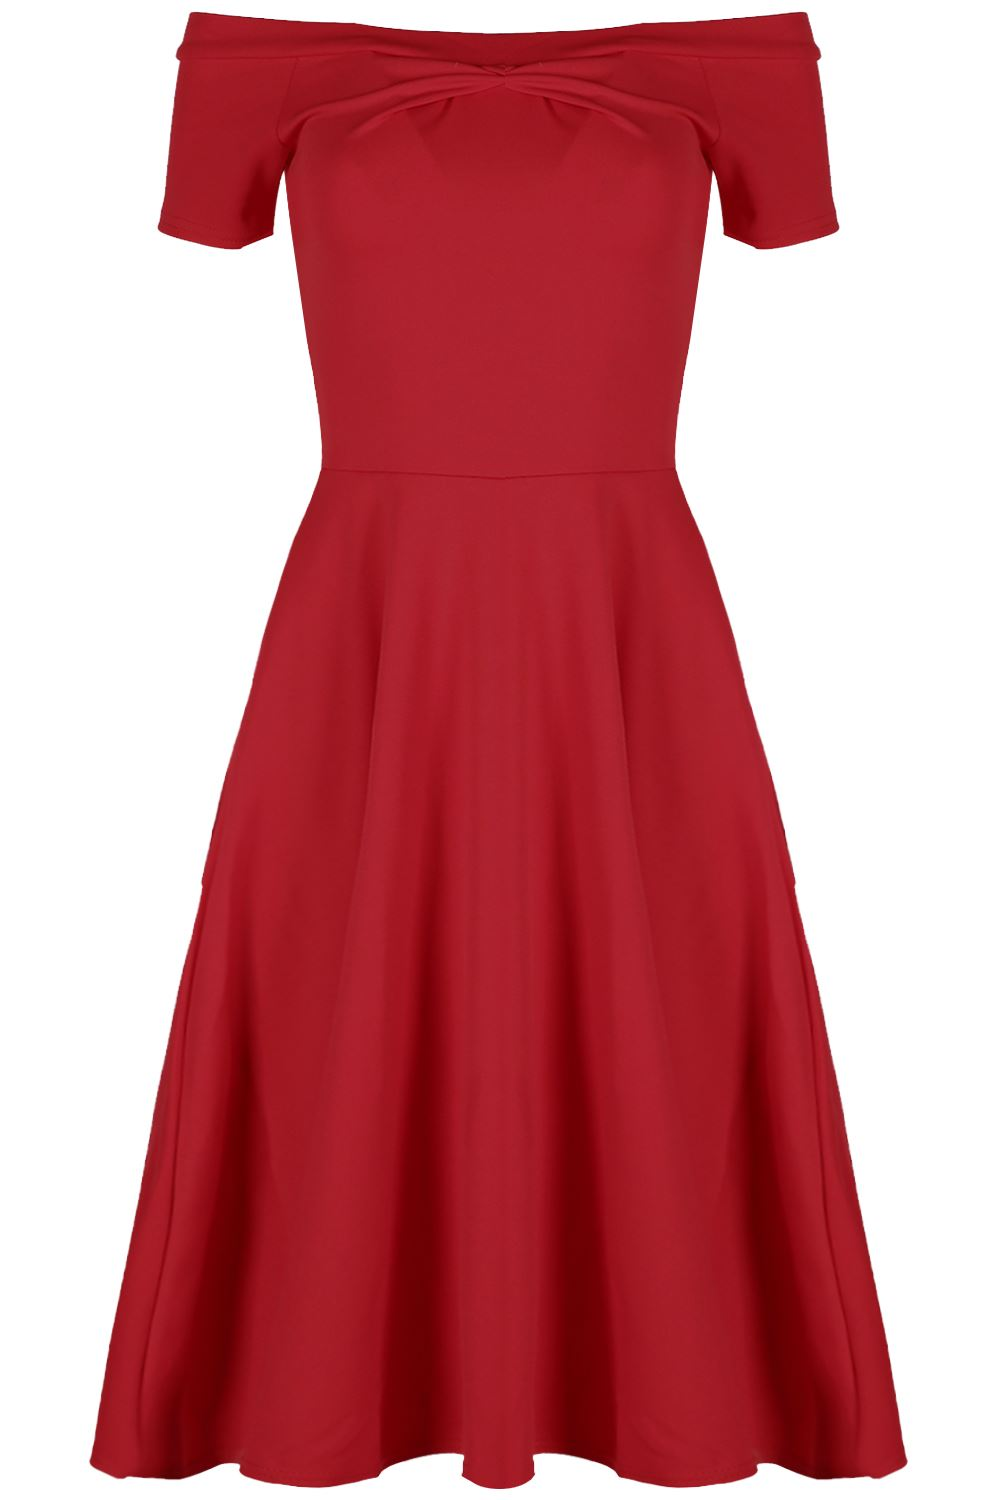 Womens Off The Shoulder Flared Cap Sleeve Ladies Party Midi Swing Skater Dress